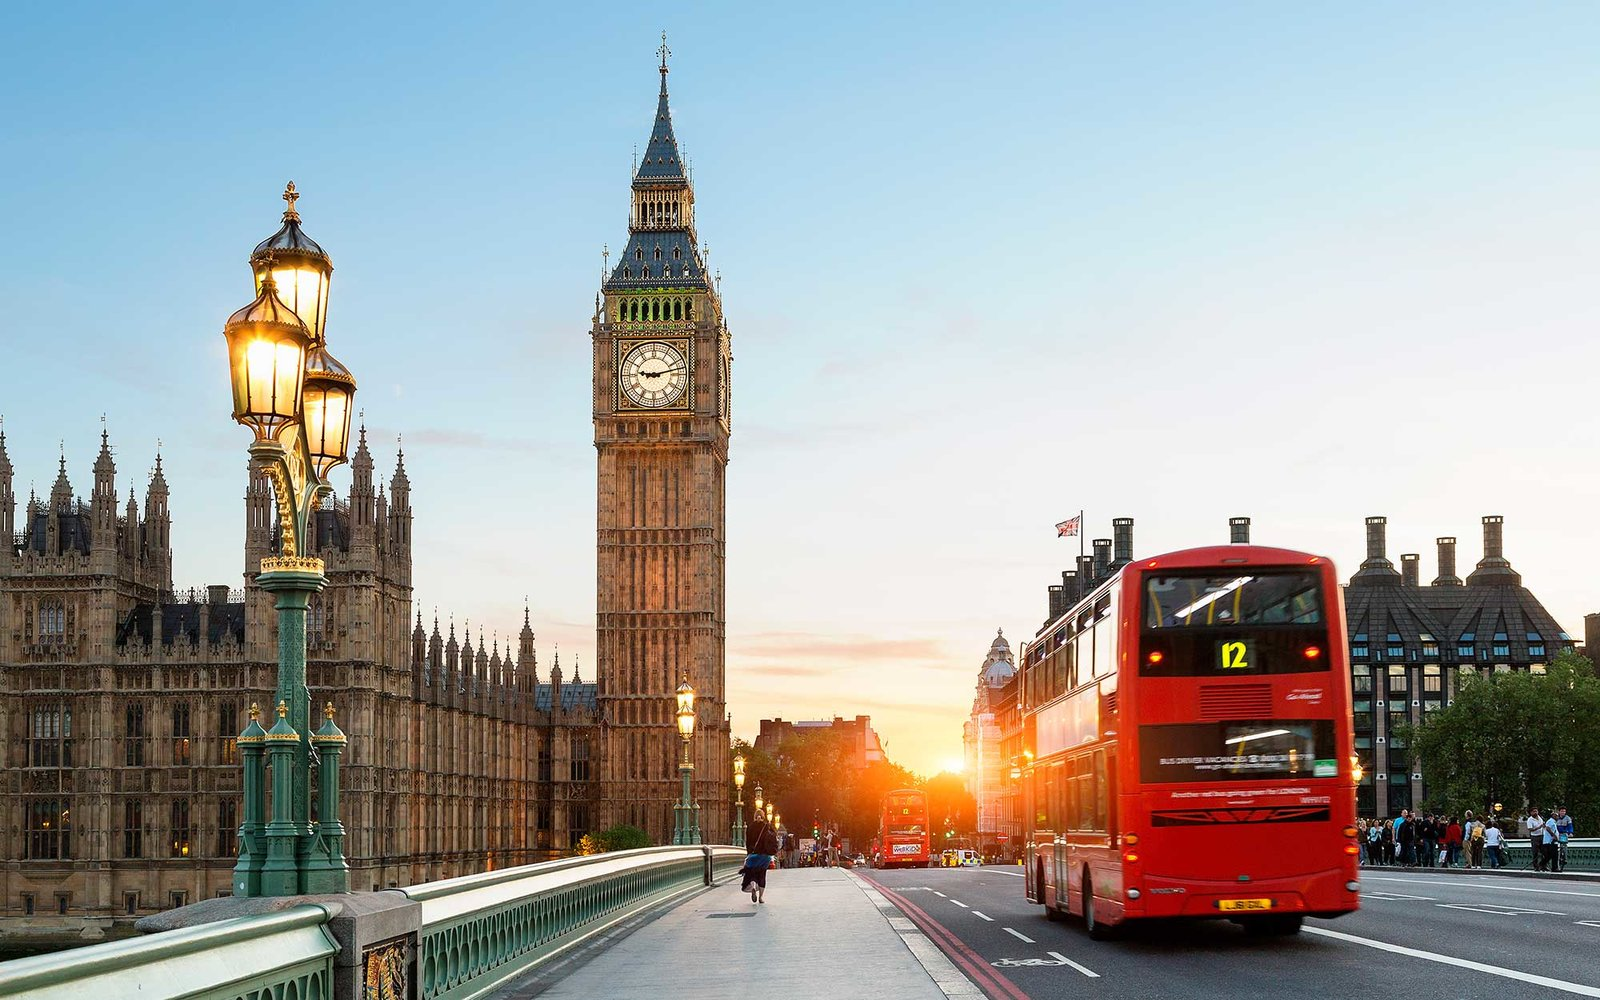 From London: Some Thoughts About Happiness, and a Few Travel Hacks.